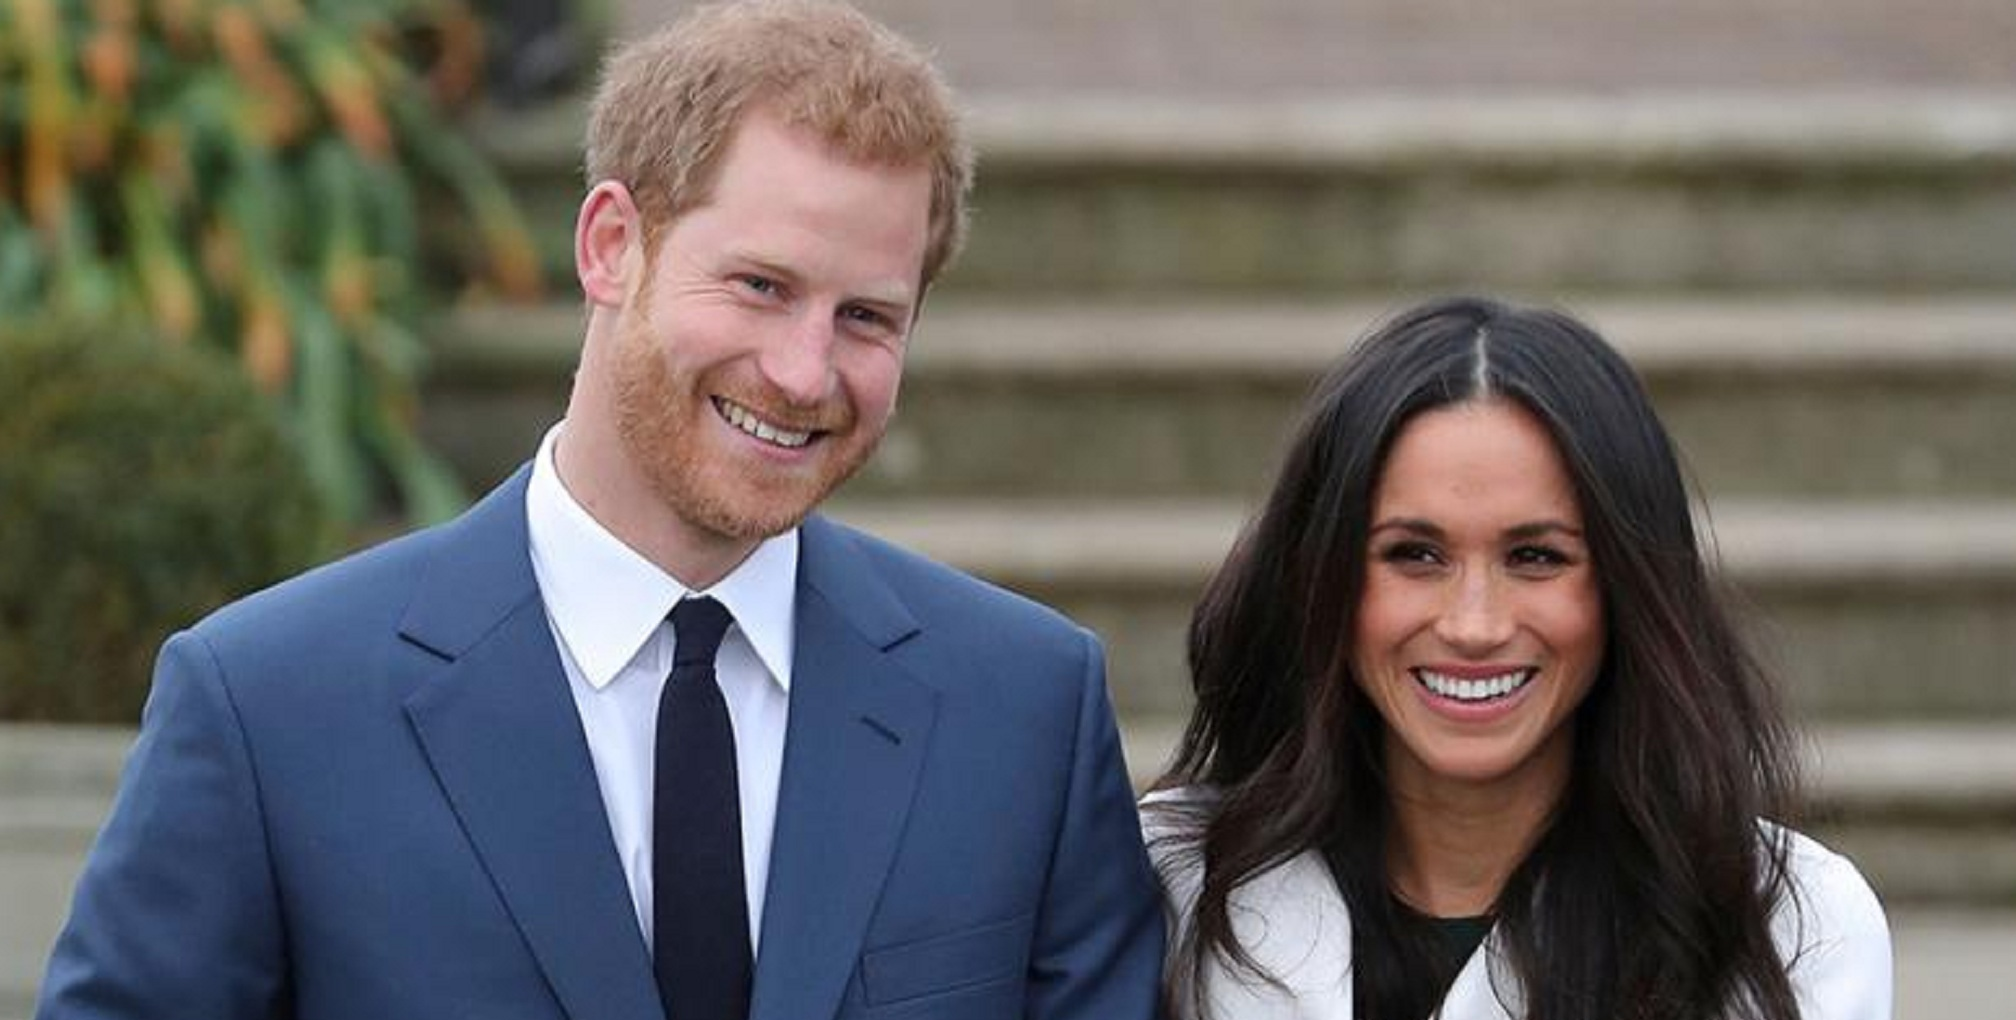 Prince Harry and Meghan Markle Expecting Their First Child Together!